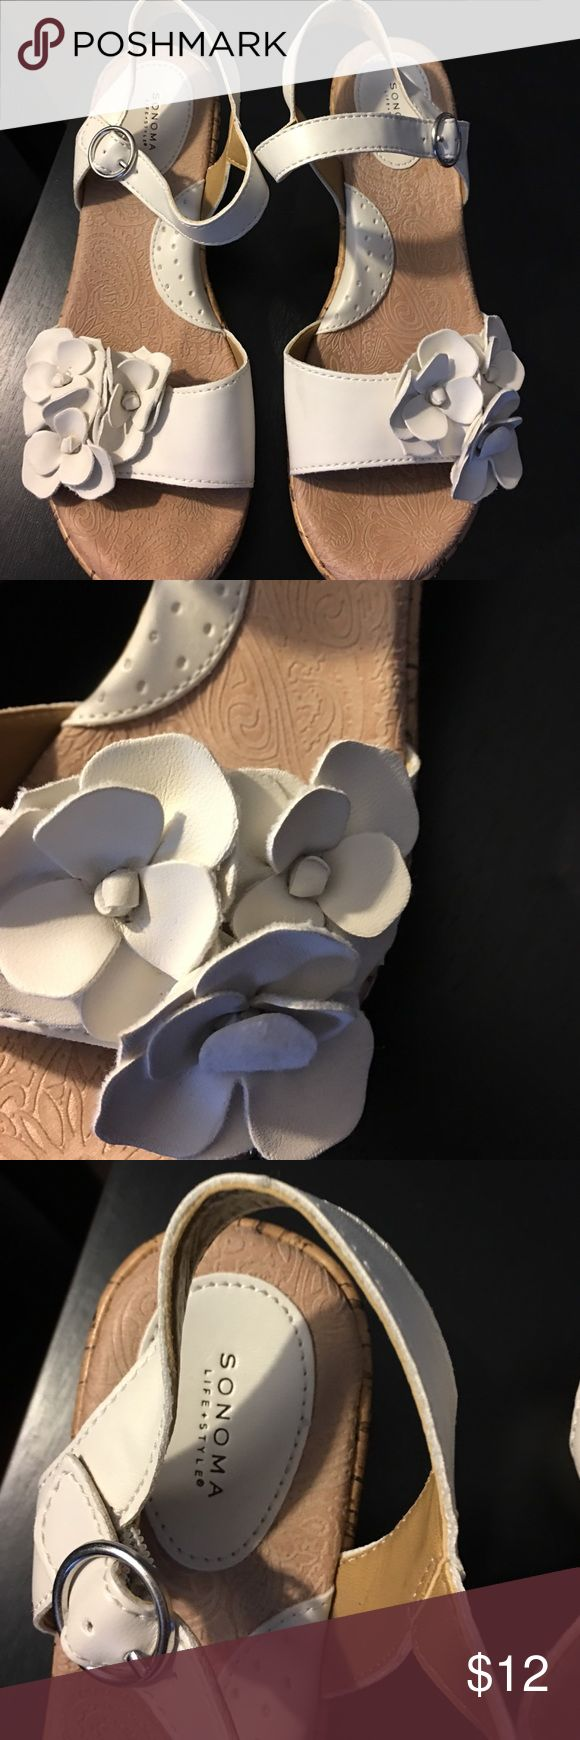 Sonoma Ladies Wedged Heels Gently Worn a couple times, Good Condition, No Box Sonoma Shoes Heels